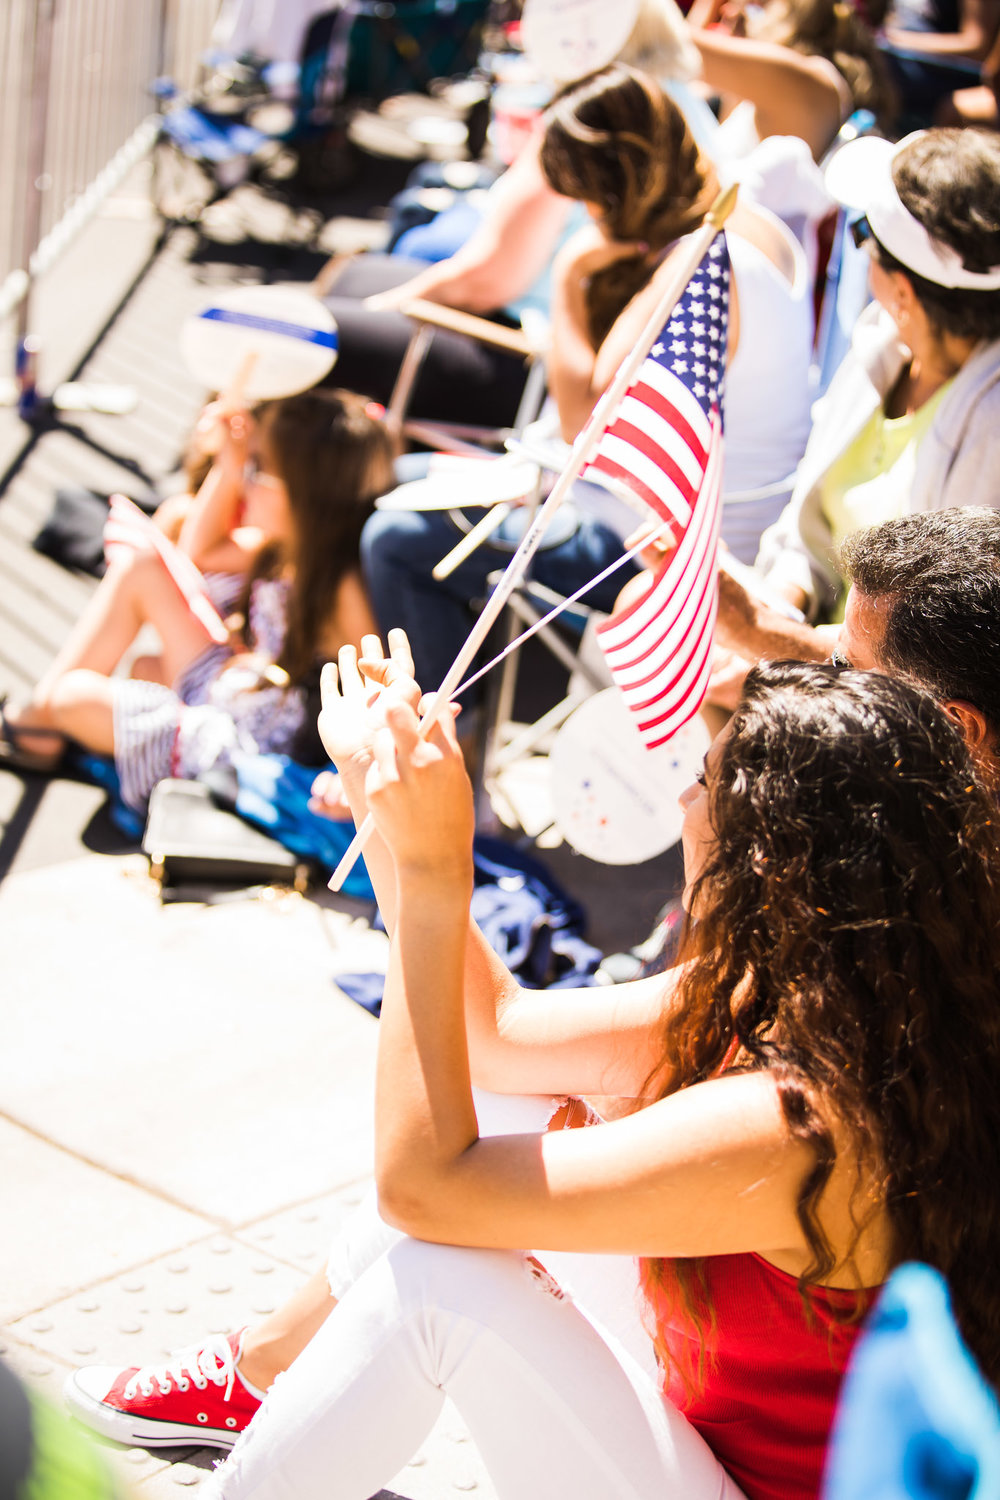 Archer_Inspired_Photography_Morgan_Hill_California_4th_of_july_parade-137.jpg